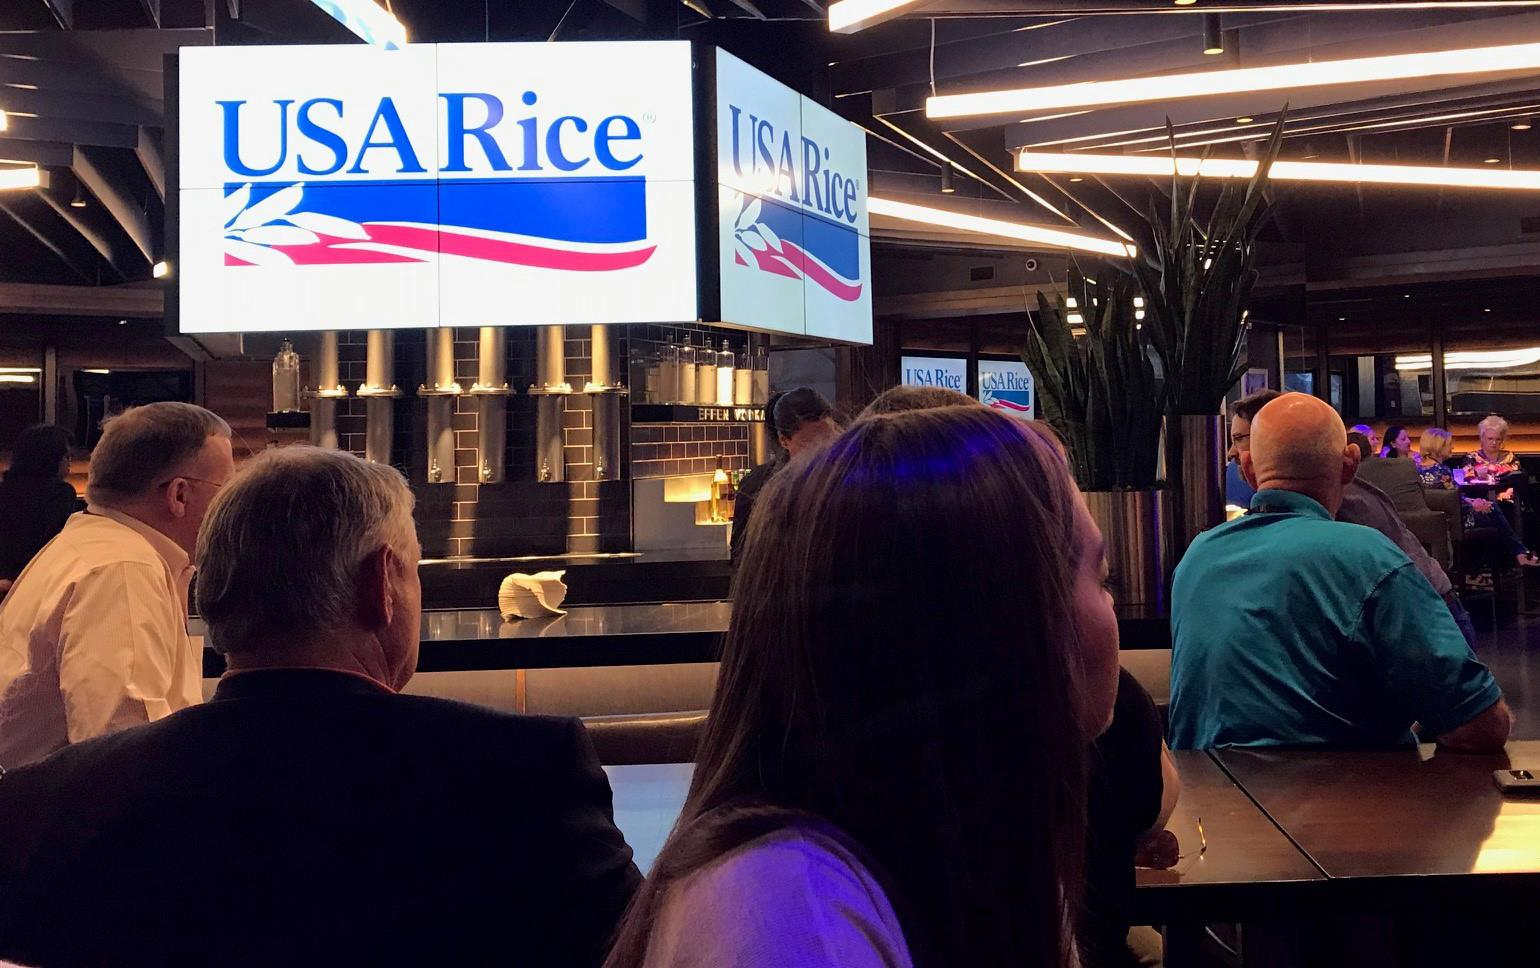 Group of people seated with backs to the camera in a large meeting room, USA Rice text and logo illuminated on big screens